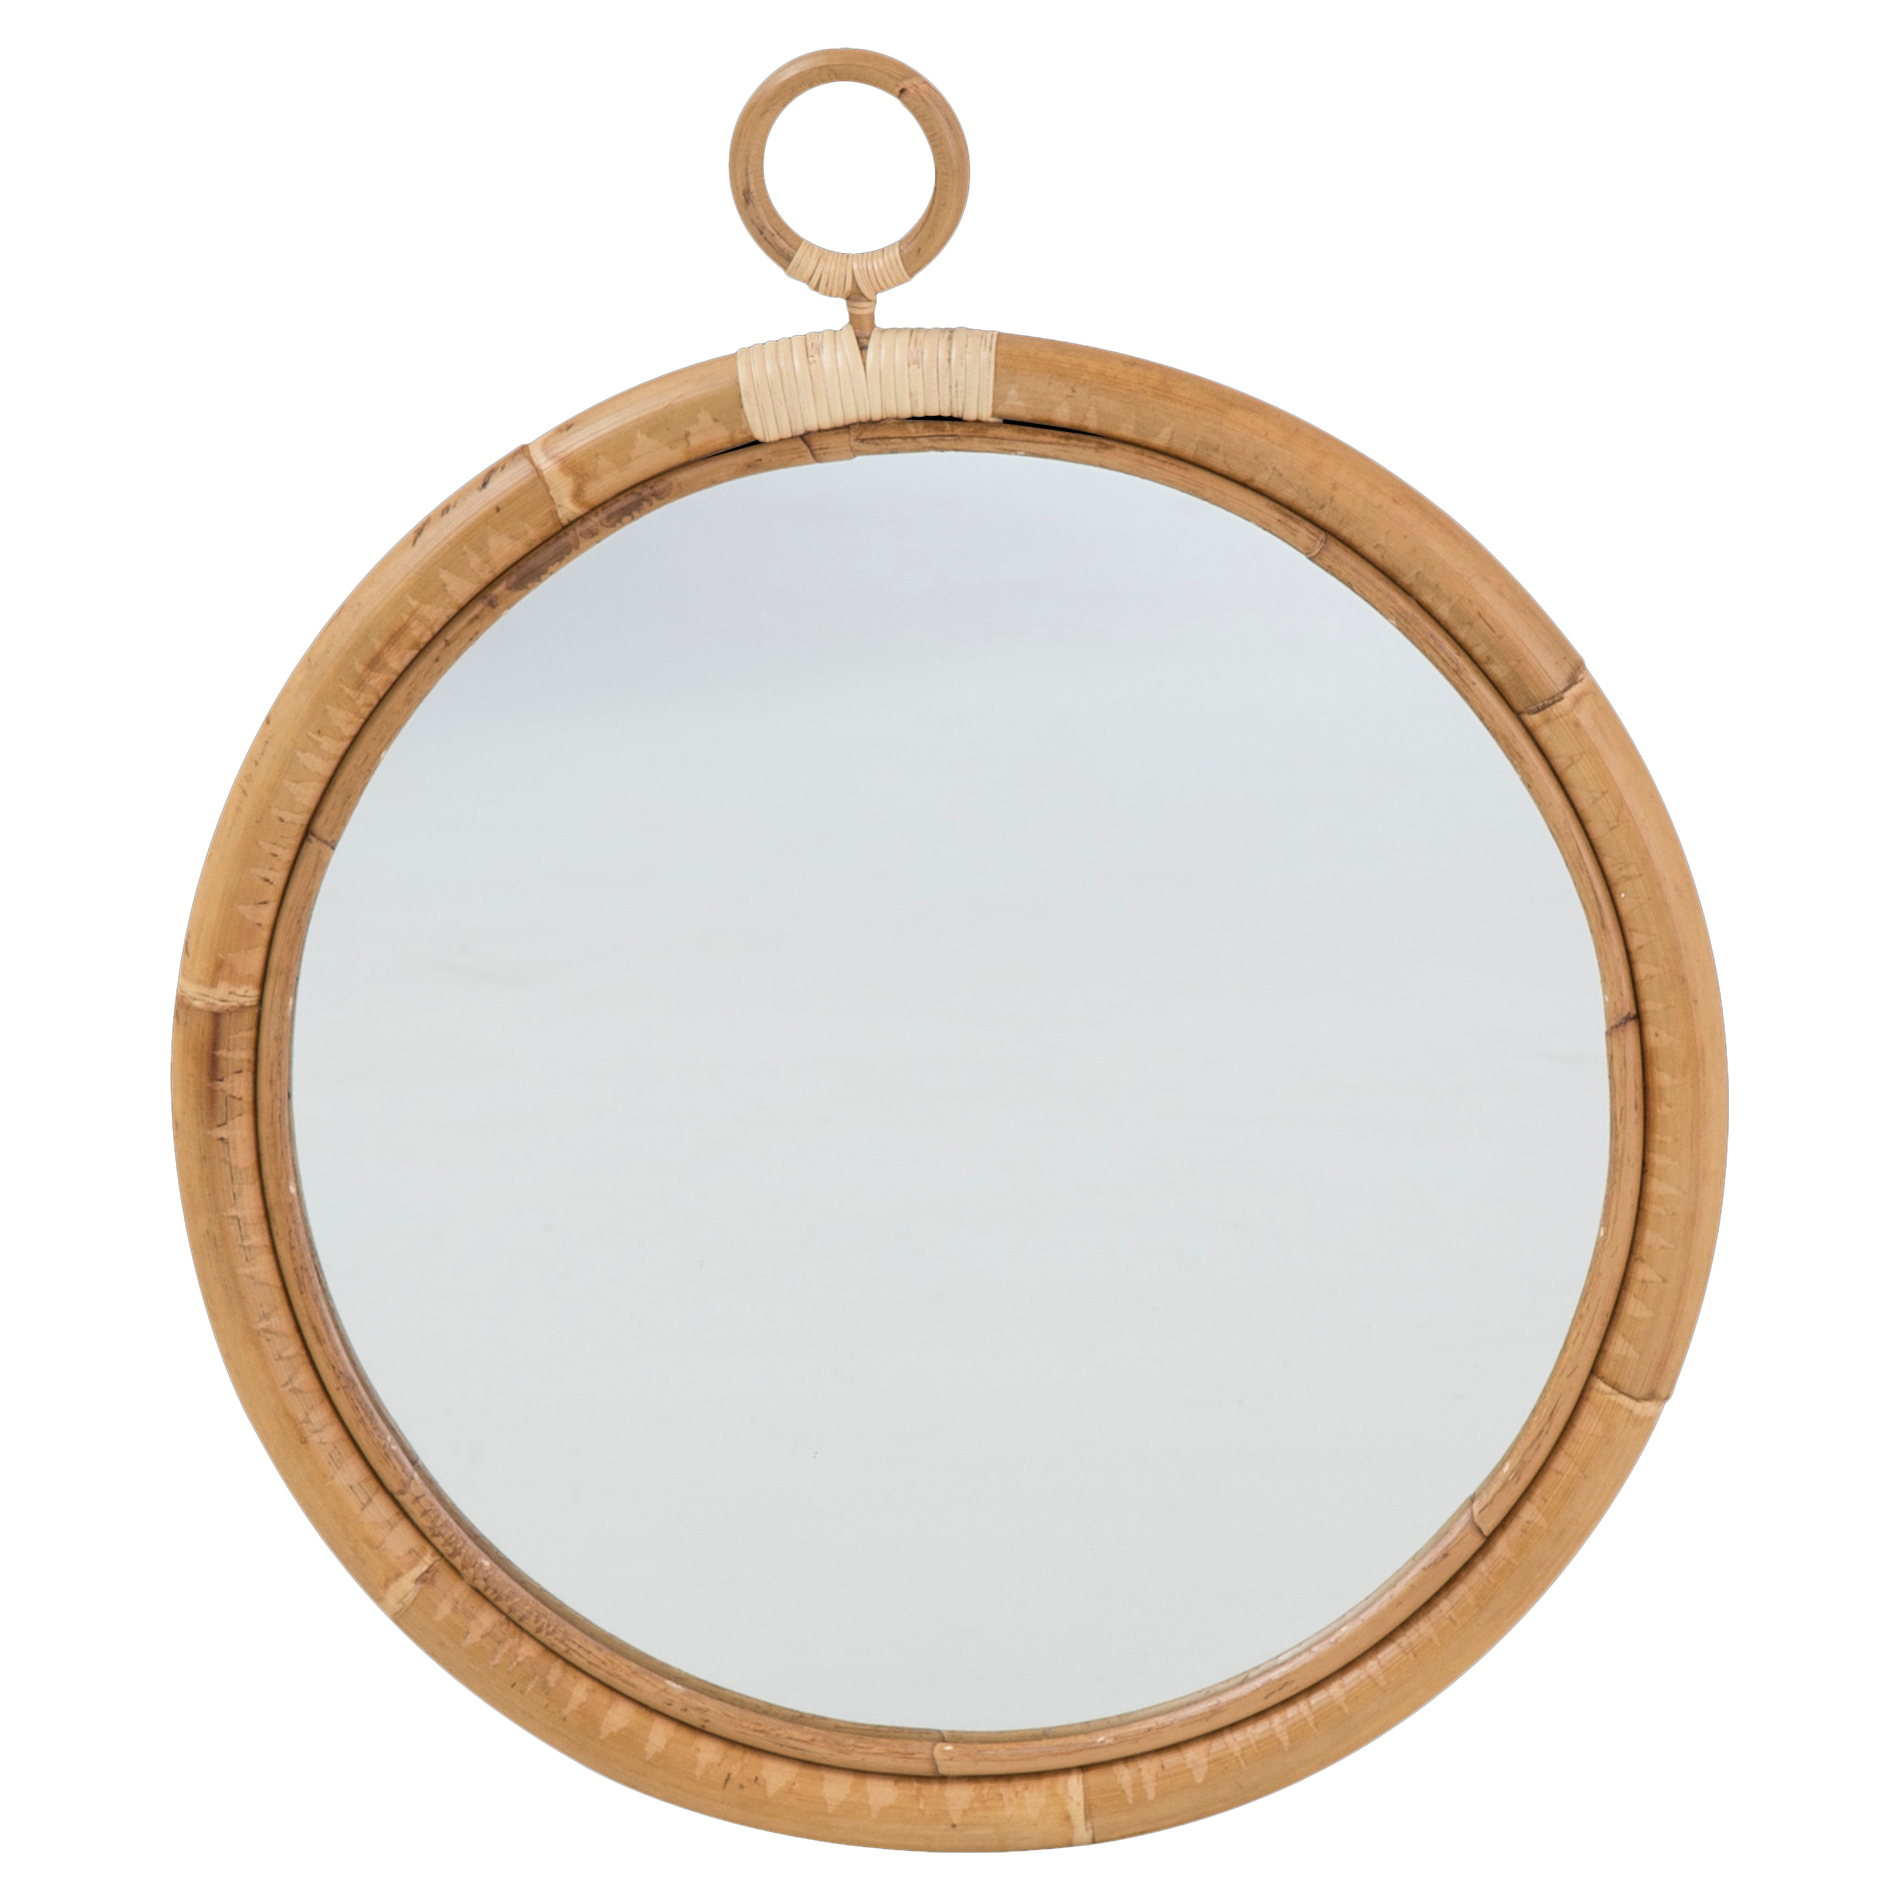 Preferred Designer Mirrors - Eclectic Mirrors | Kathy Kuo Home TZ22